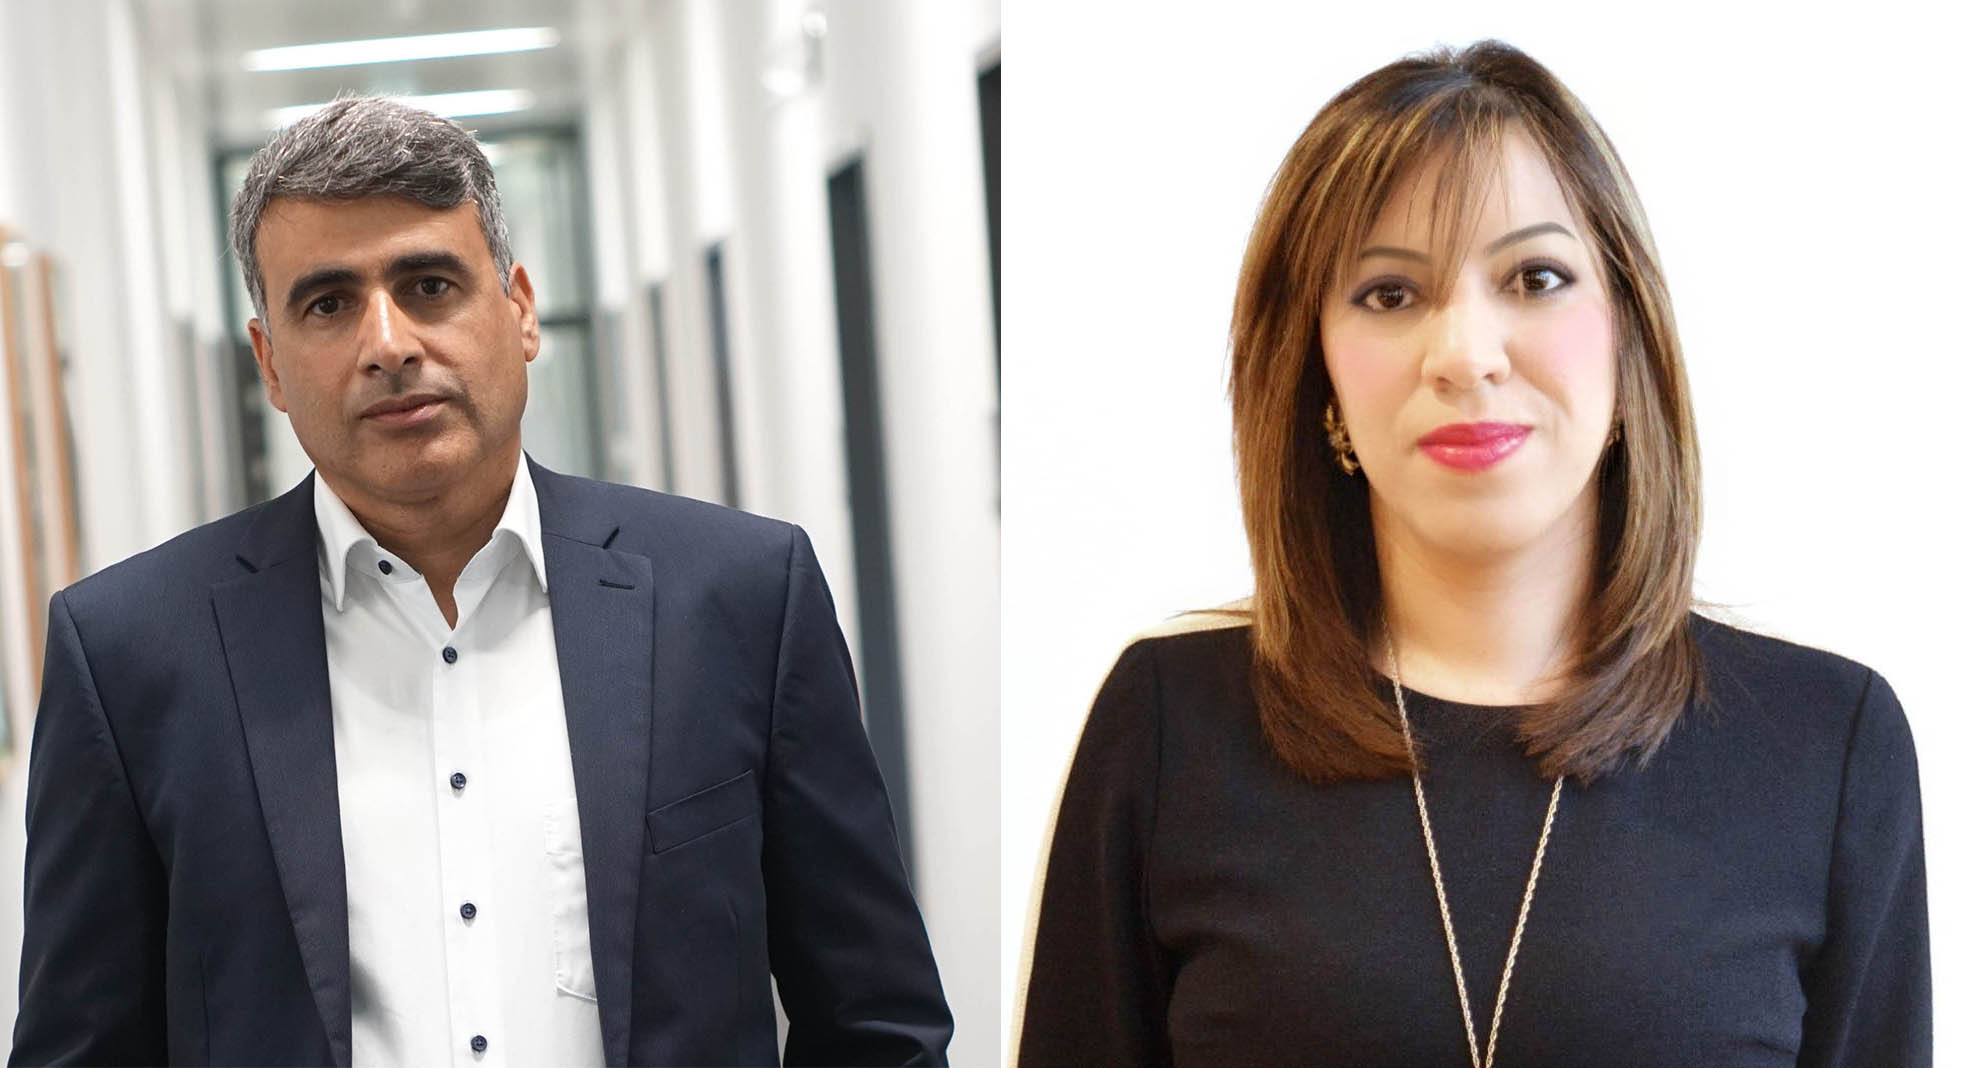 Academics like Dr Al Ajlan and Dr Mathbout can find it hard to prove their expertise and qualifications when they arrive in new countries as refugees. Image credit left - Dr Al Ajlan, Image credit right - Dr Mathbout